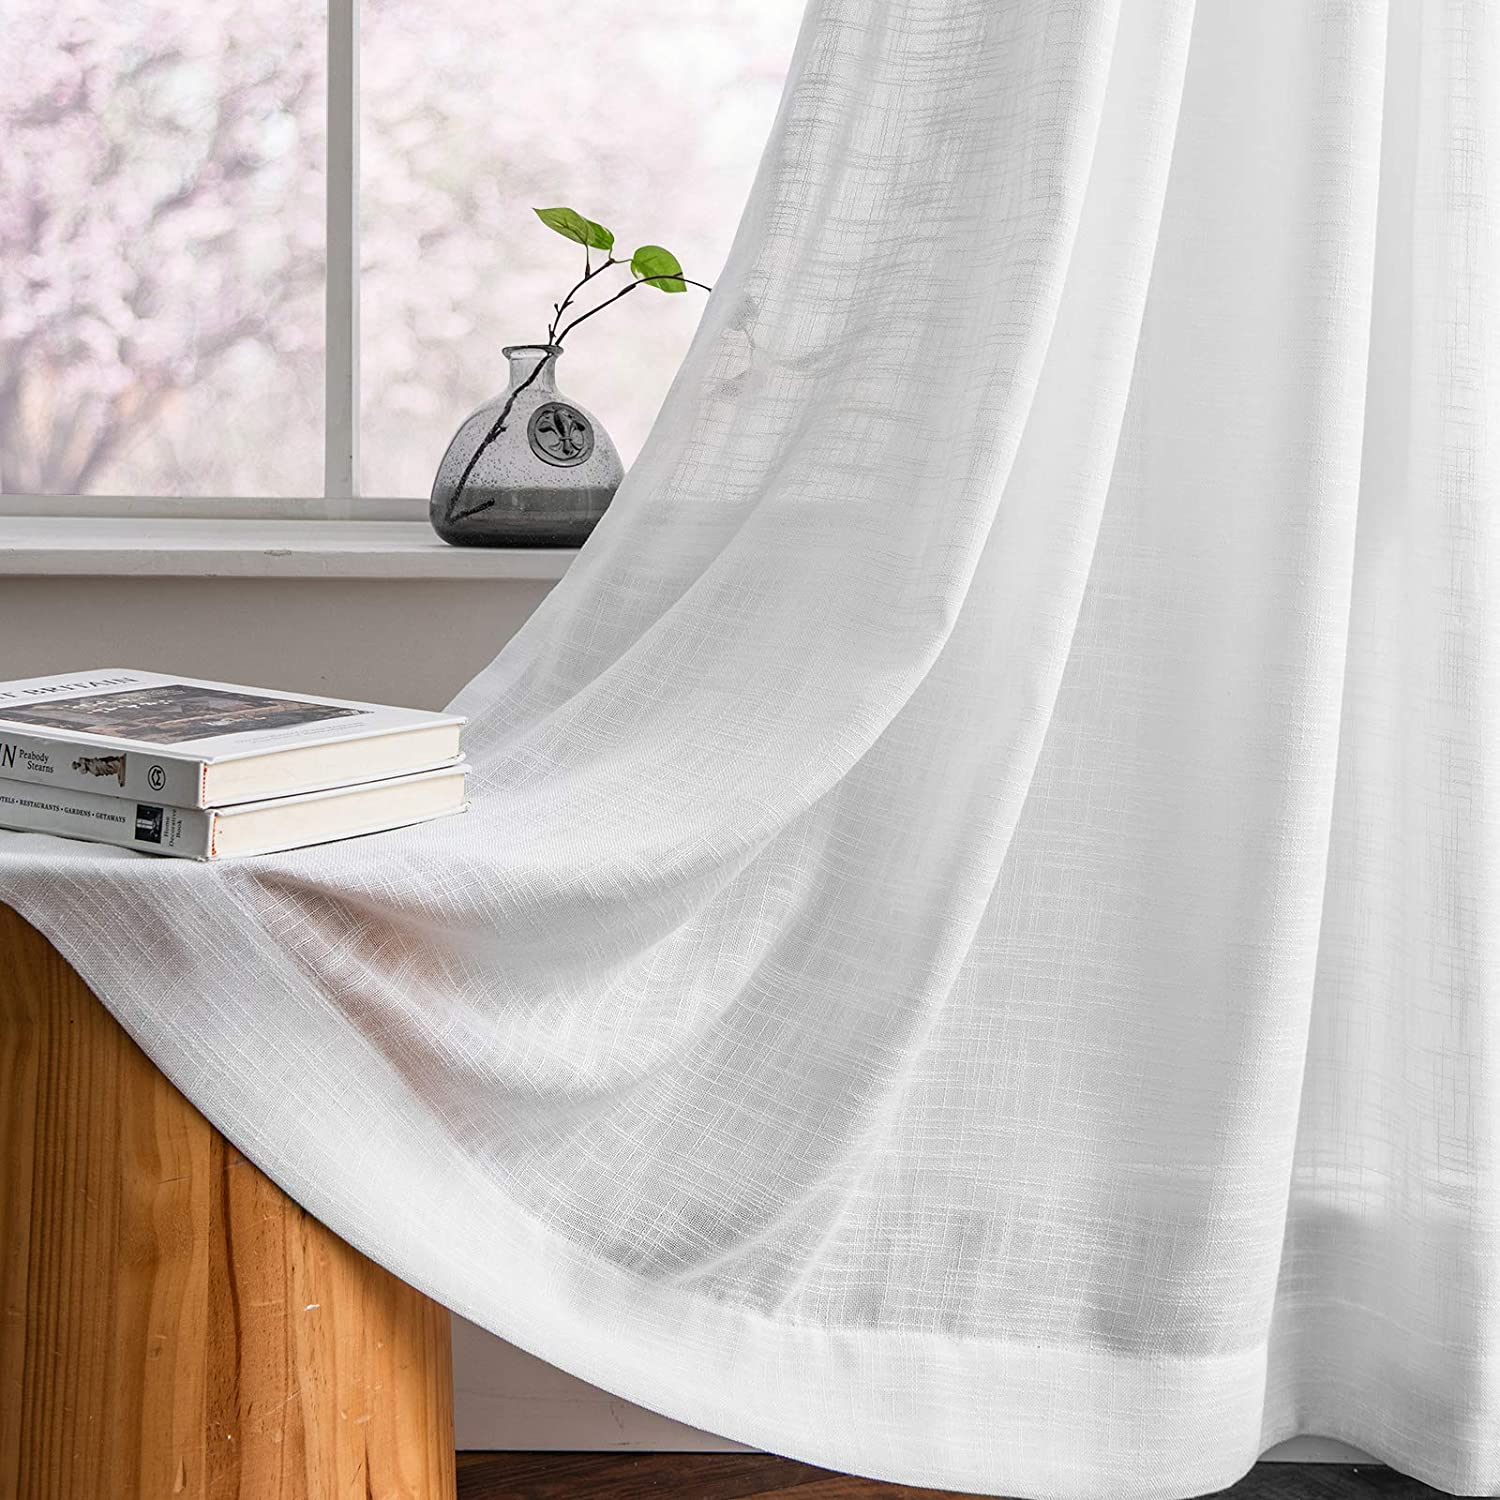 Melodieux White Linen Textured Semi Sheer Curtains 84 Inches Long for Living Room Bedroom Natural Flax Linen Rod Pocket Voile Drapes, 52 by 84 Inch (2 Panels)